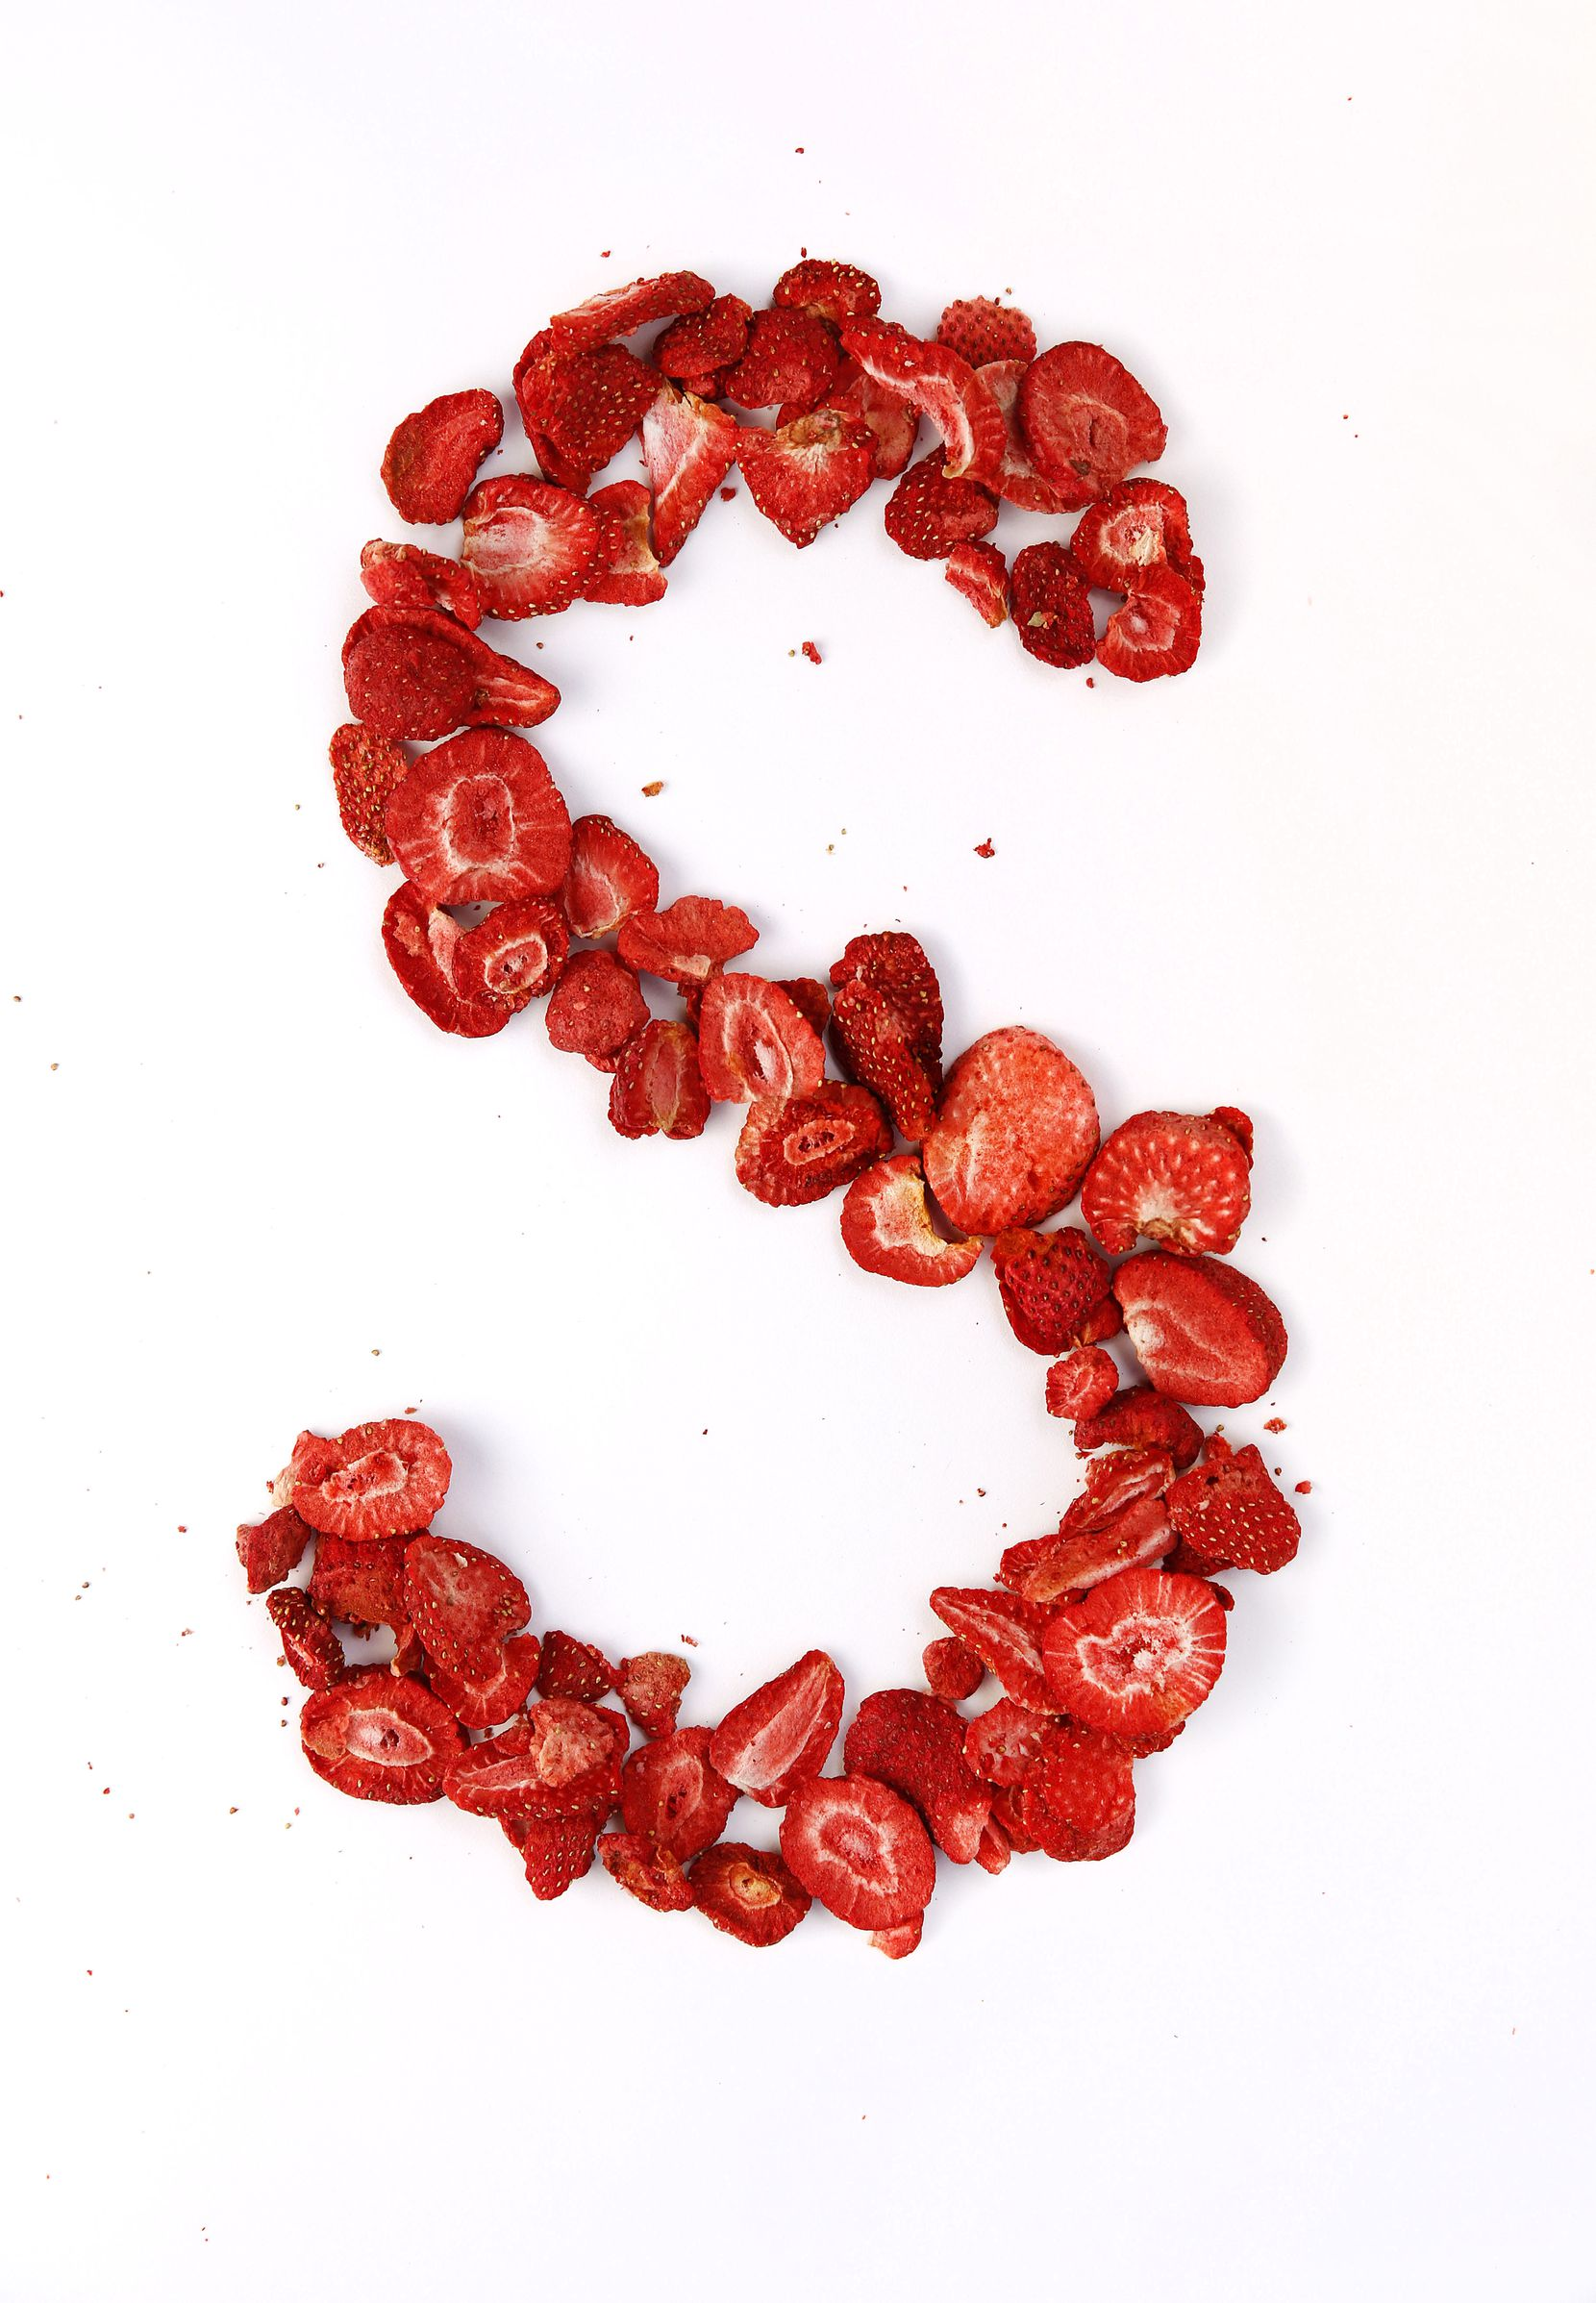 Oven dried strawberry chips